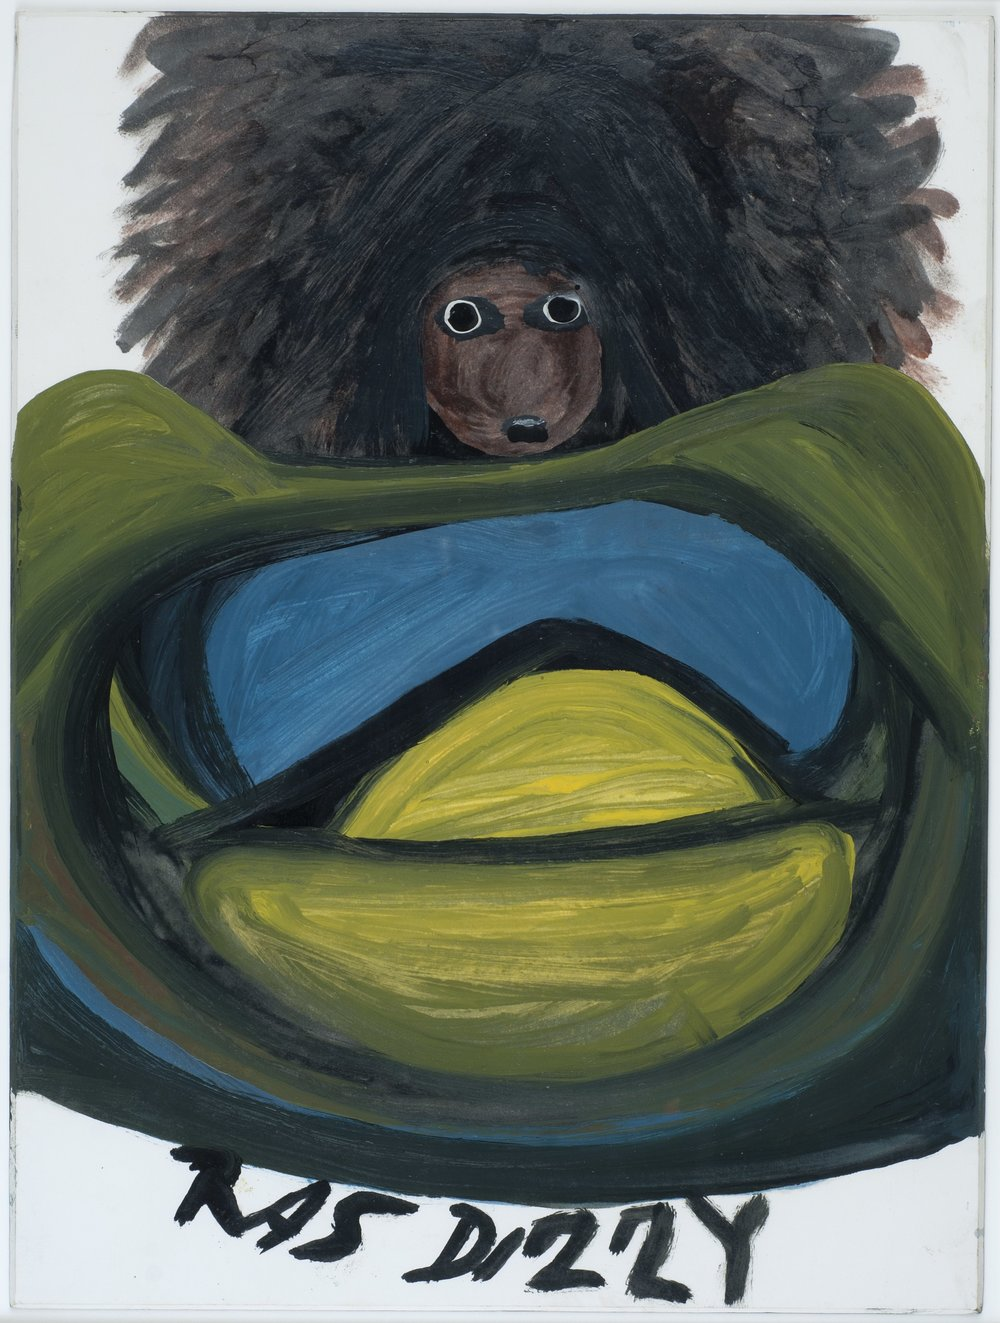 Ras Dizzy The Dread, 1998 Oil, tempera on matboard 14.25 x 10.75 inches 36.2 x 27.3 cm RD 98